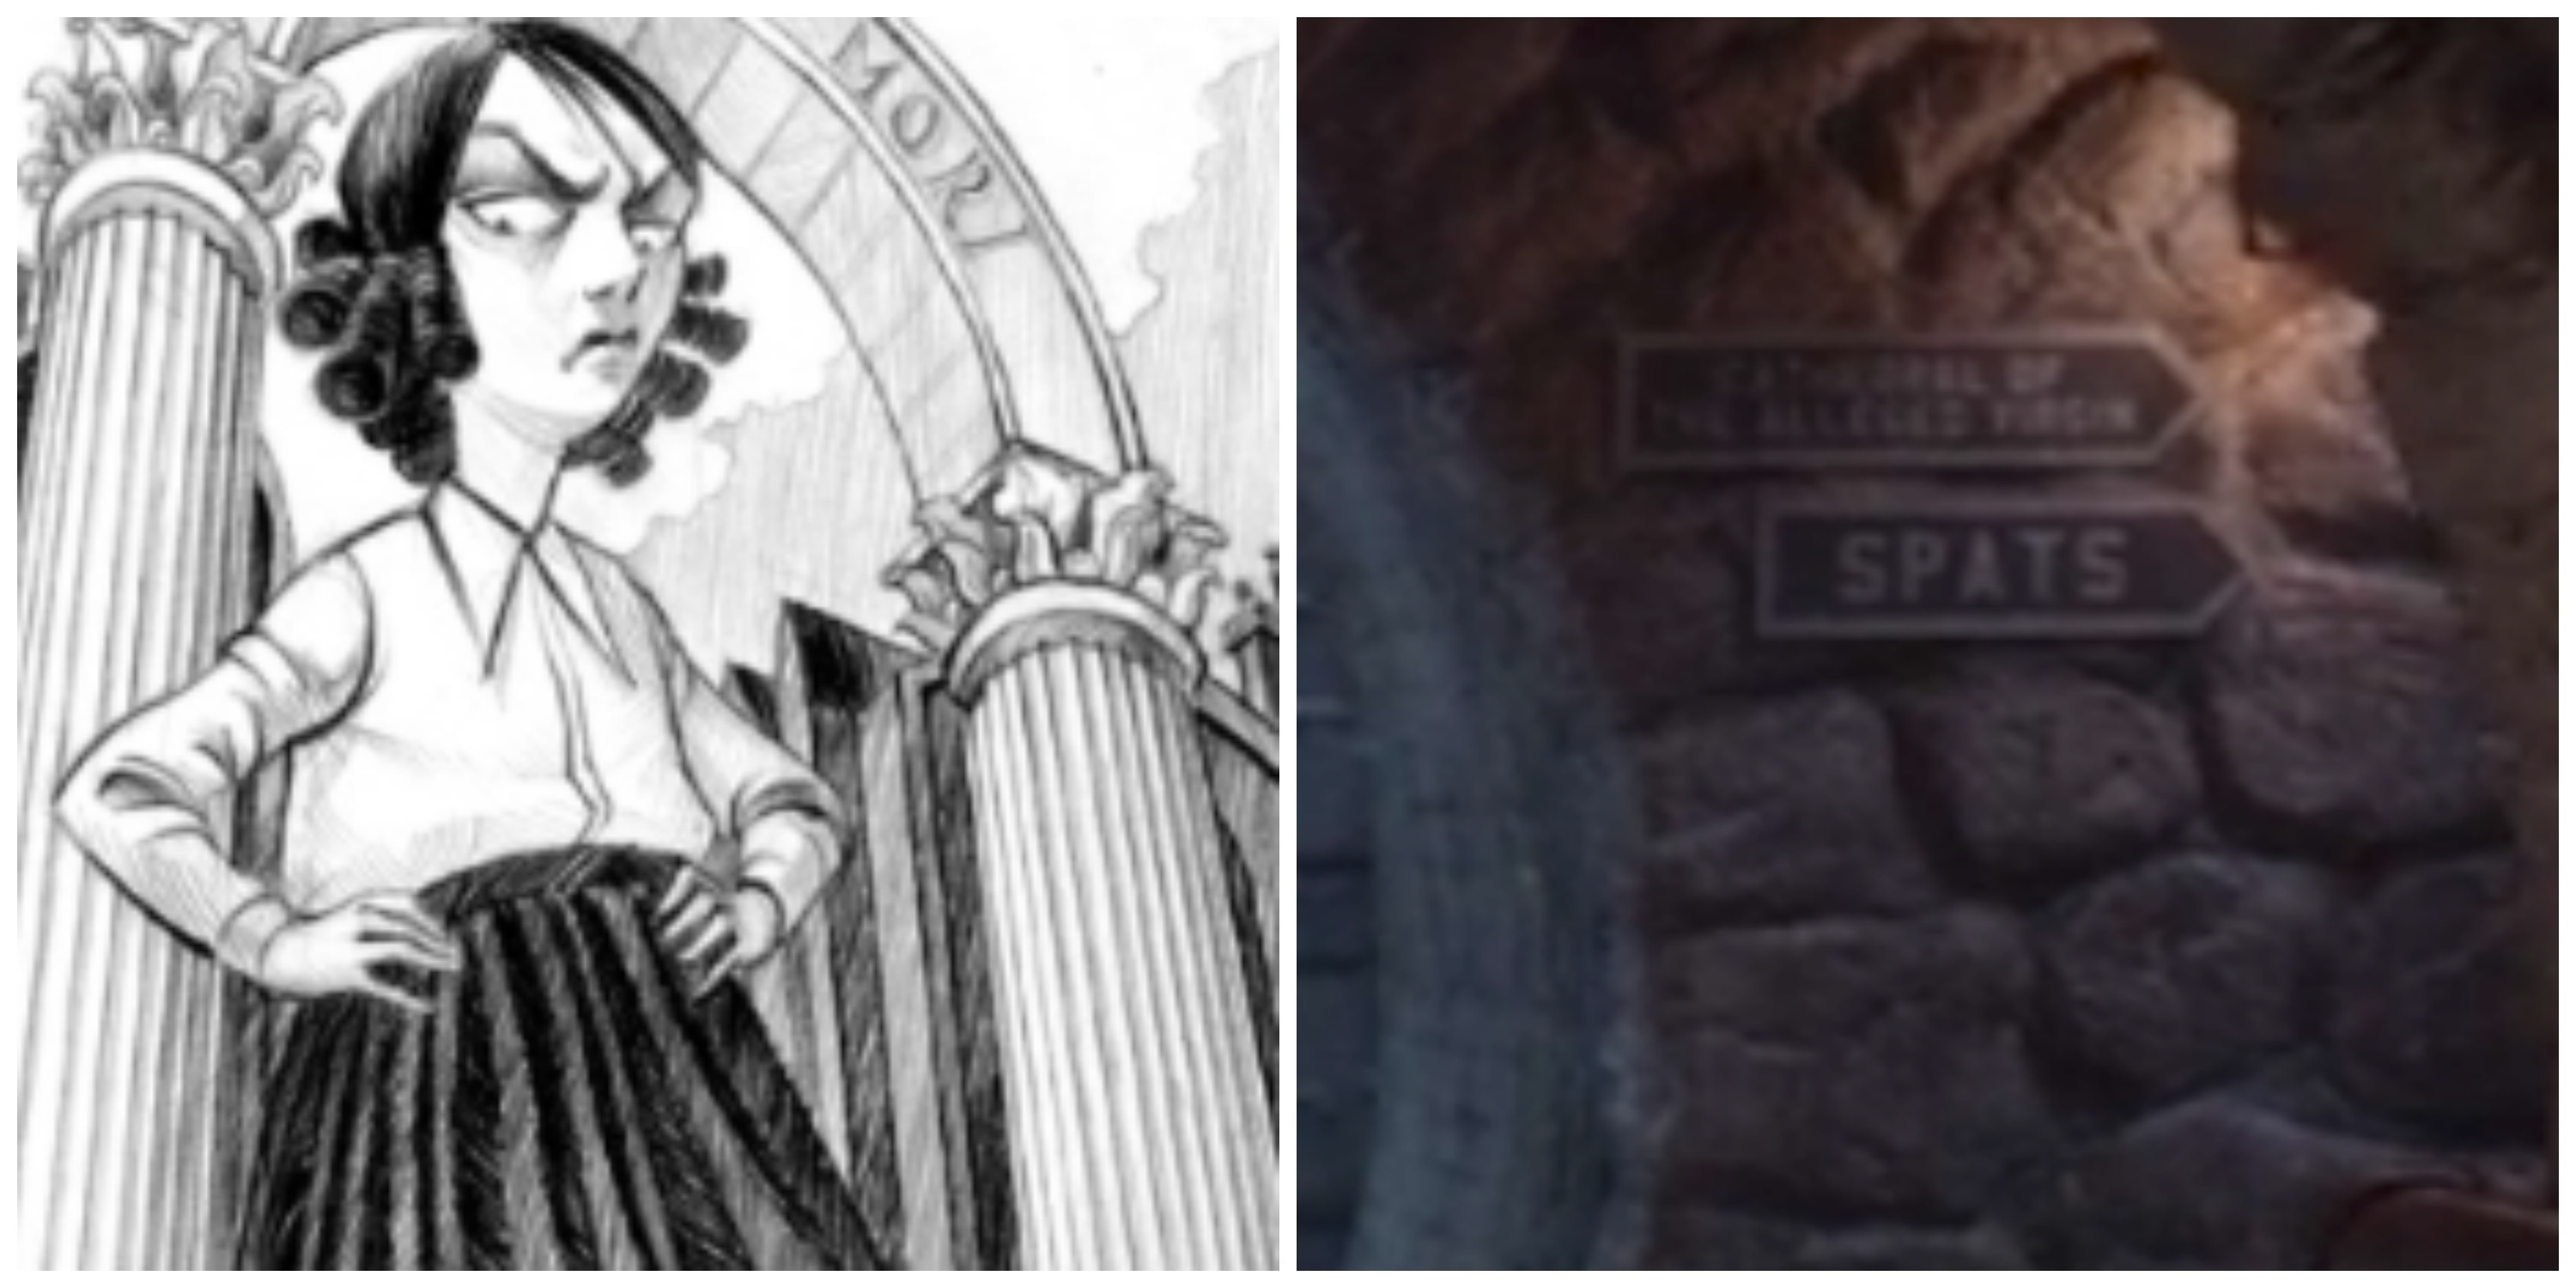 LEFT: Carmelita Spats as drawn by Brett Helquist. Right: Her name in the tunnels.